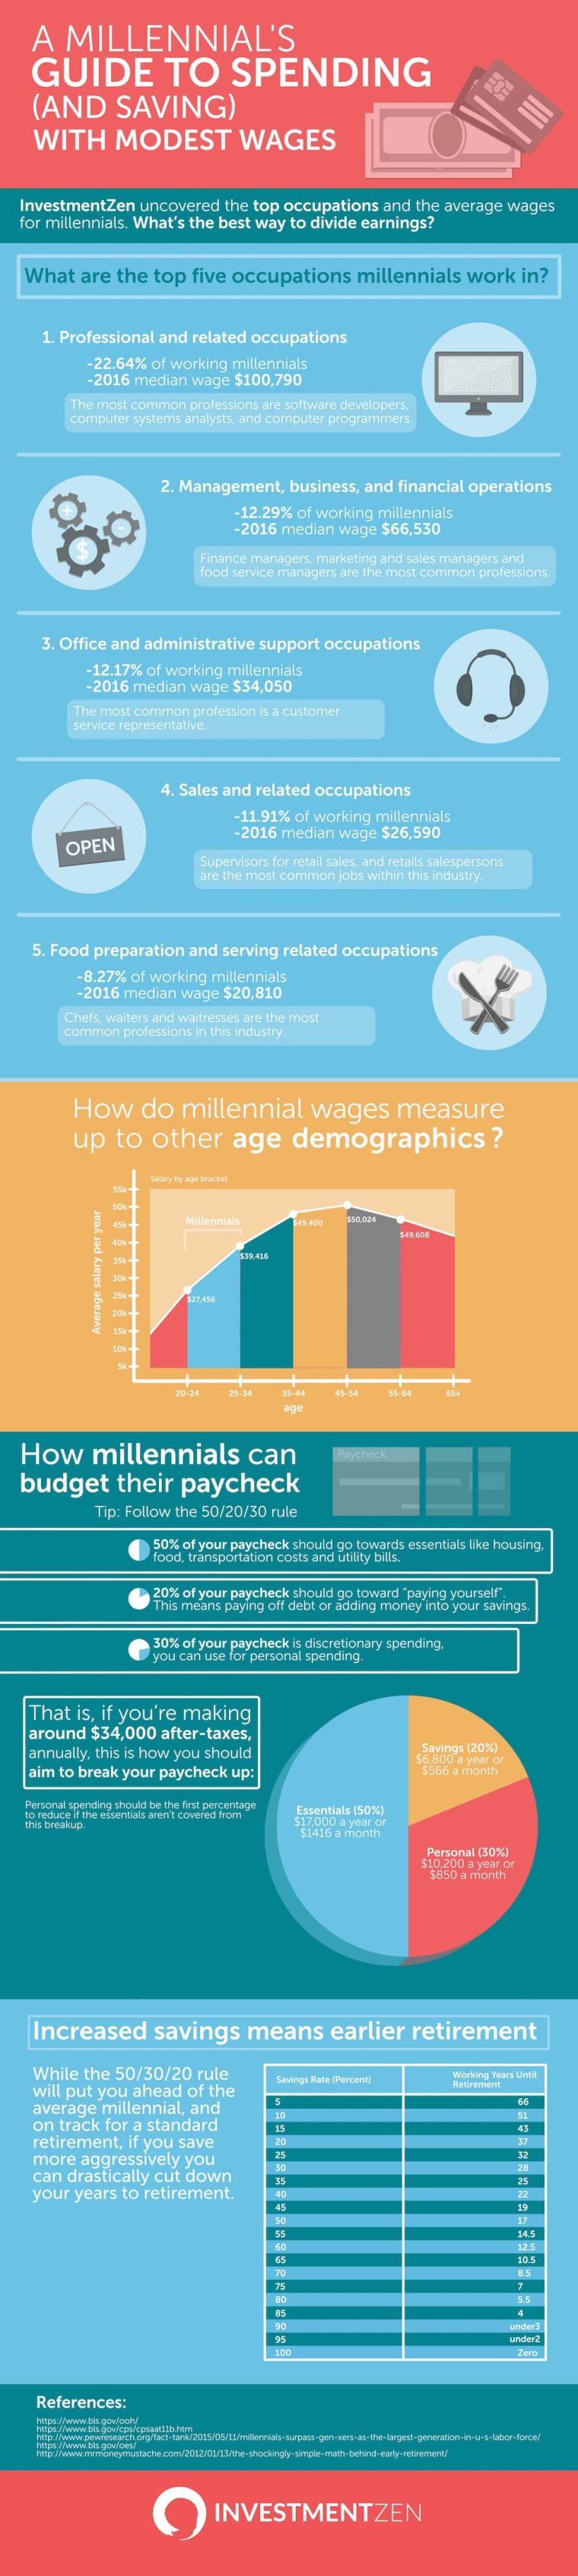 Guide to spending and saving for millennials - infographic